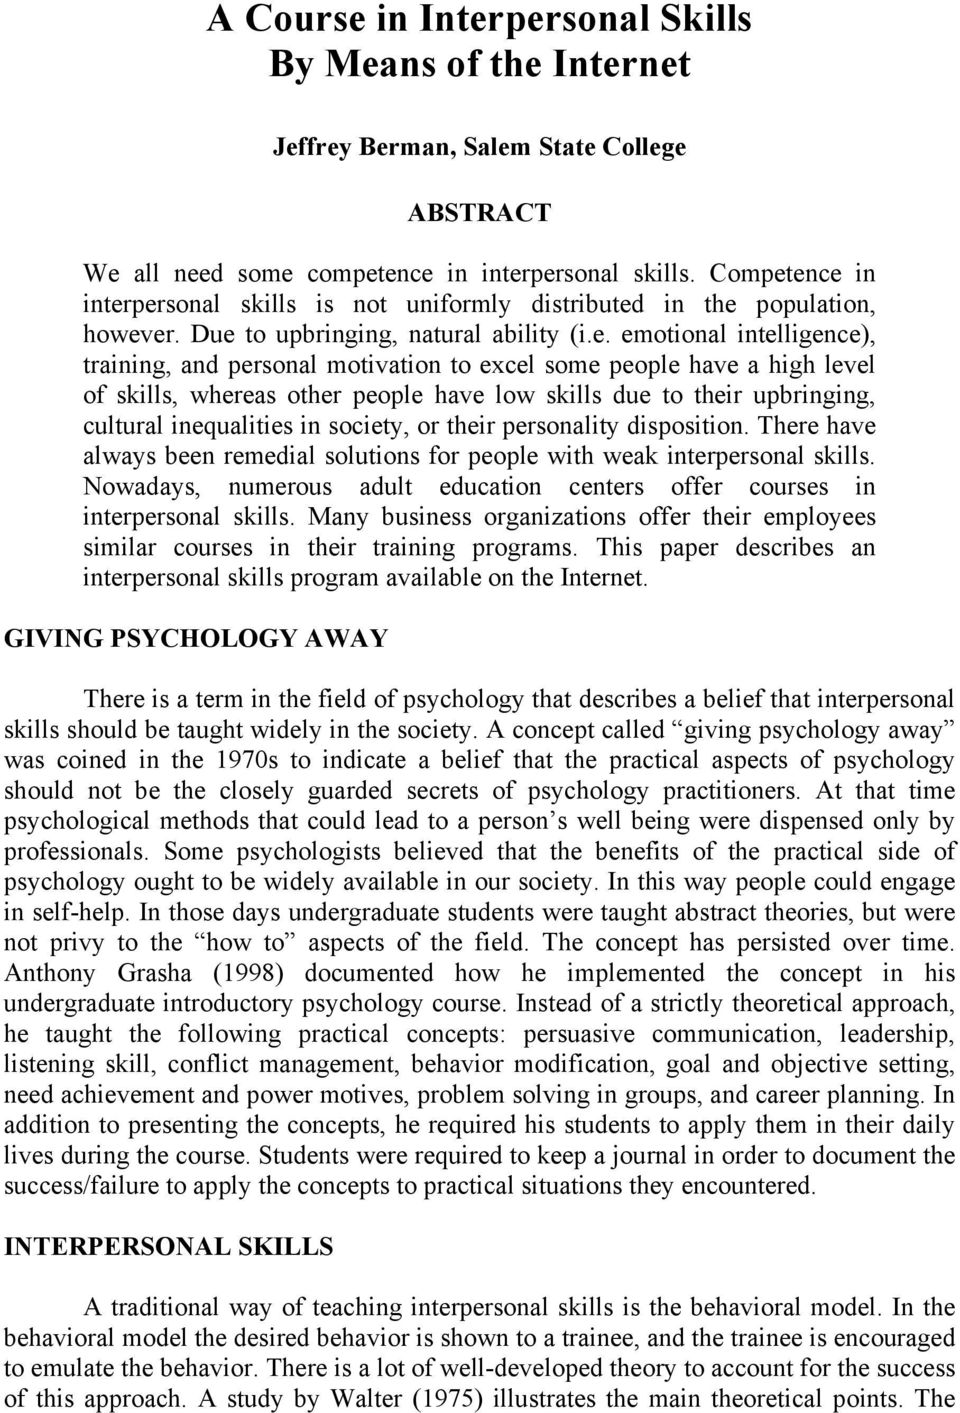 ence in interpersonal skills is not uniformly distributed in the population, however. Due to upbringing, natural ability (i.e. emotional intelligence), training, and personal motivation to excel some